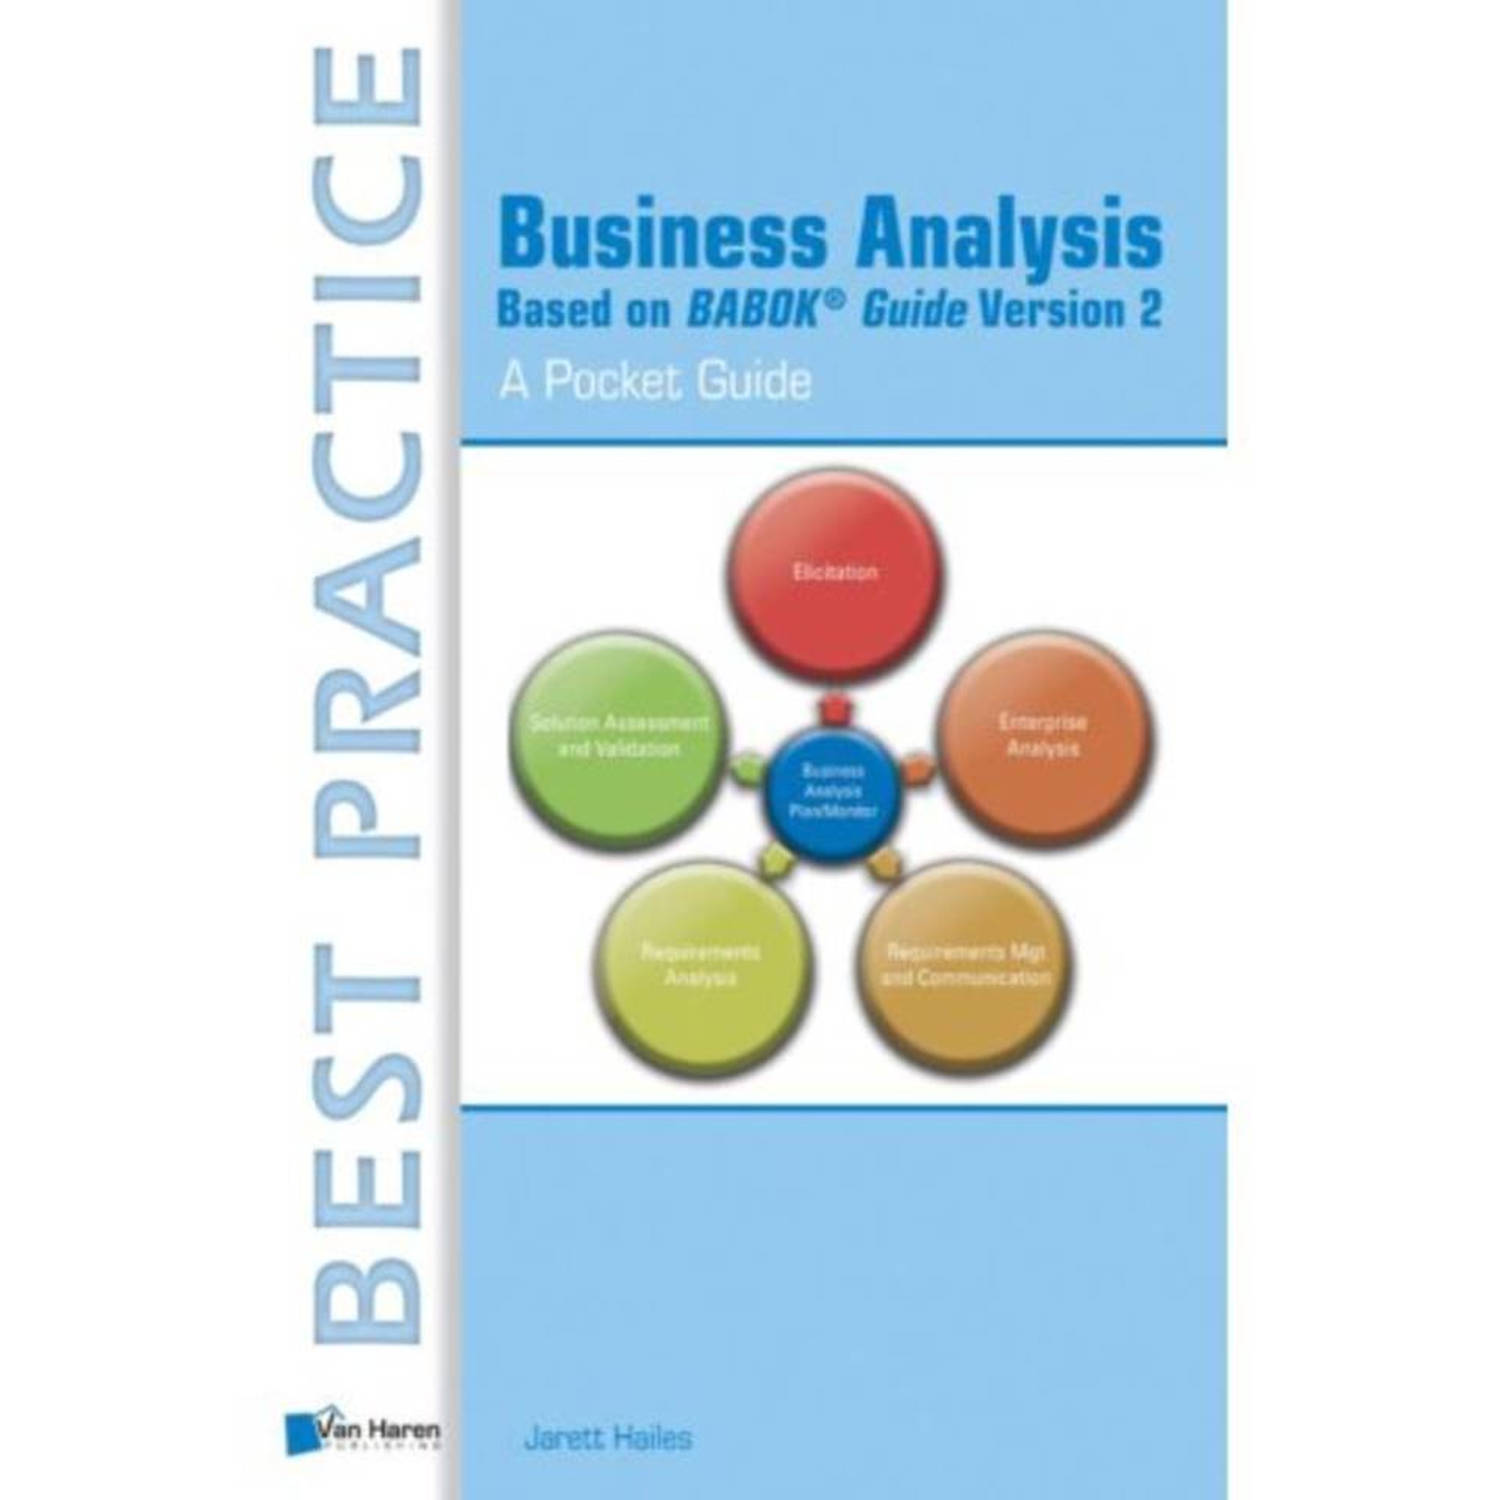 Business analysis - Best practice